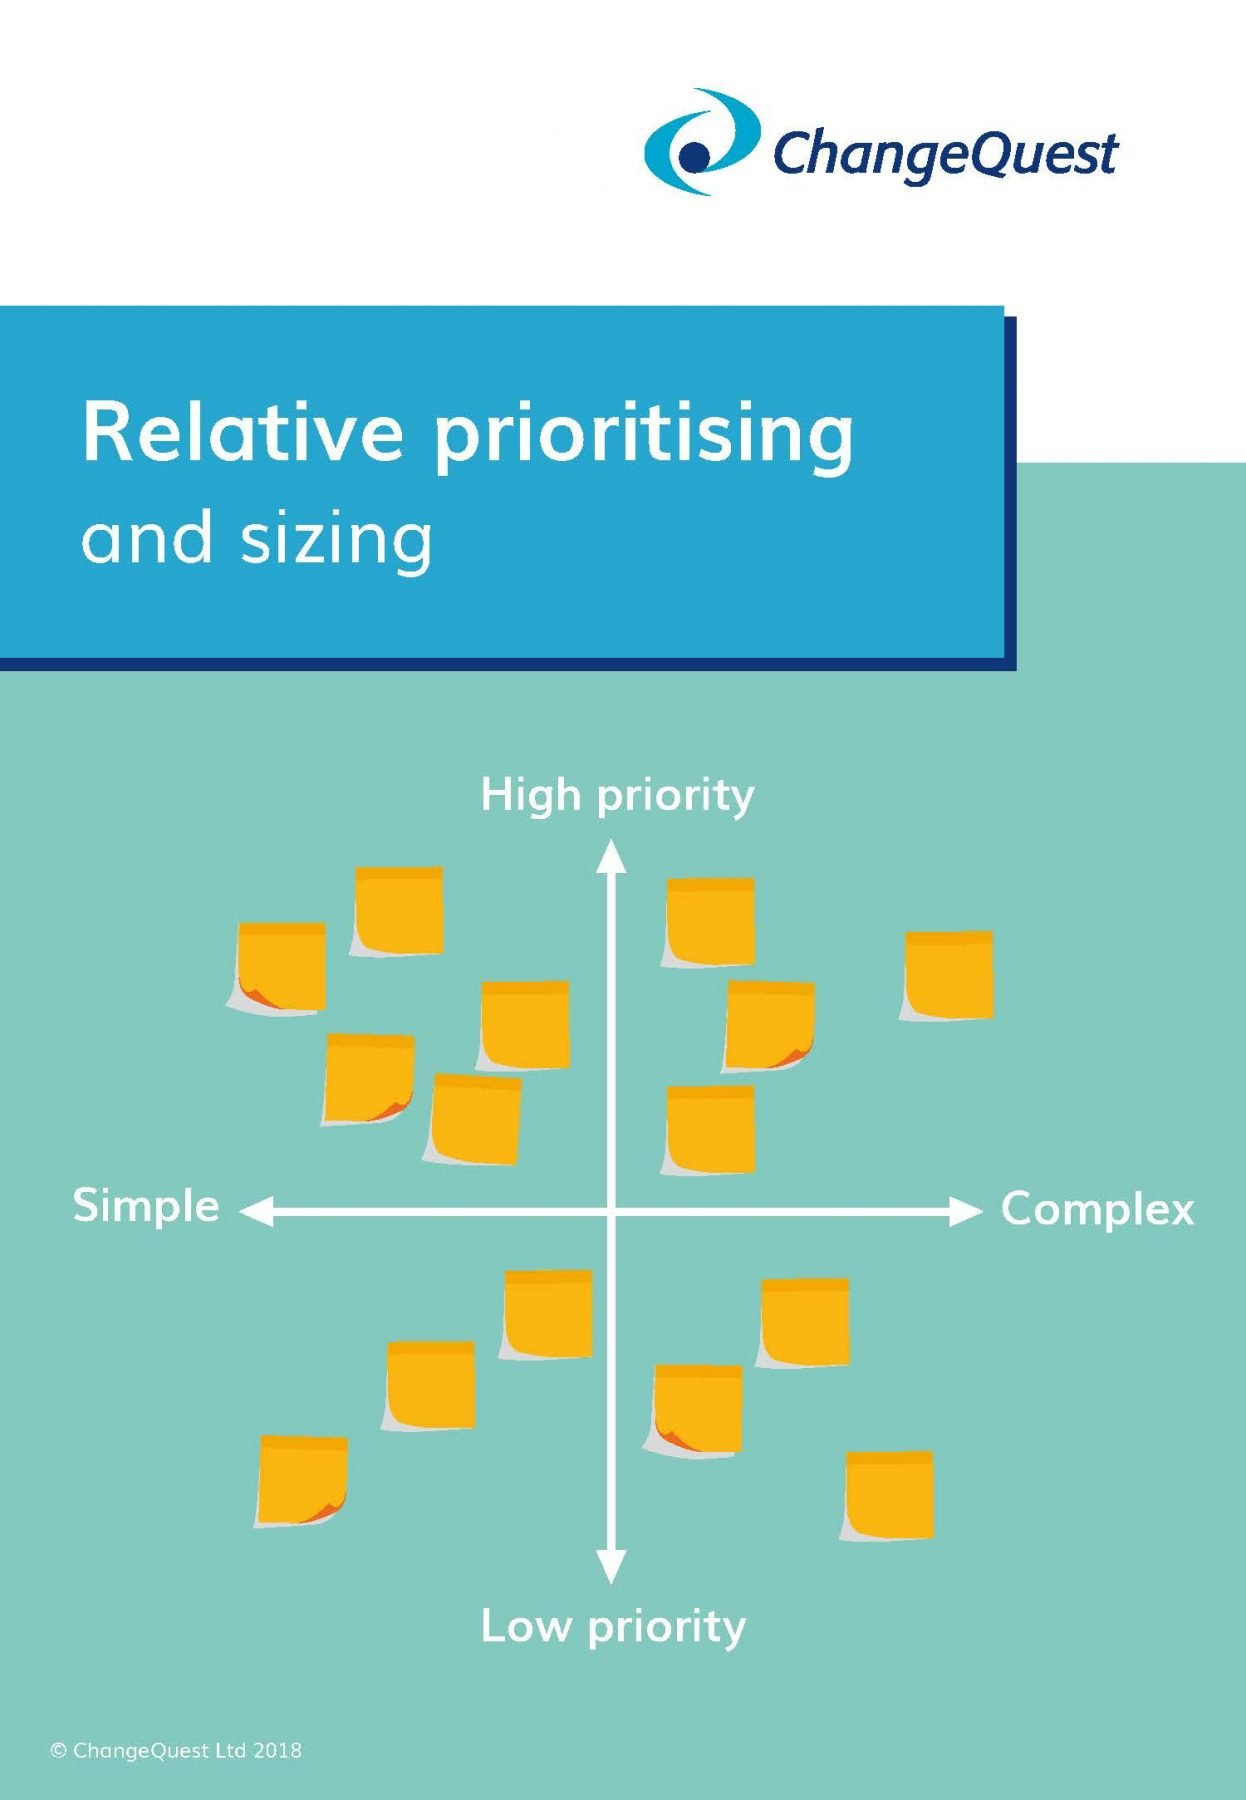 Relative prioritising and sizing